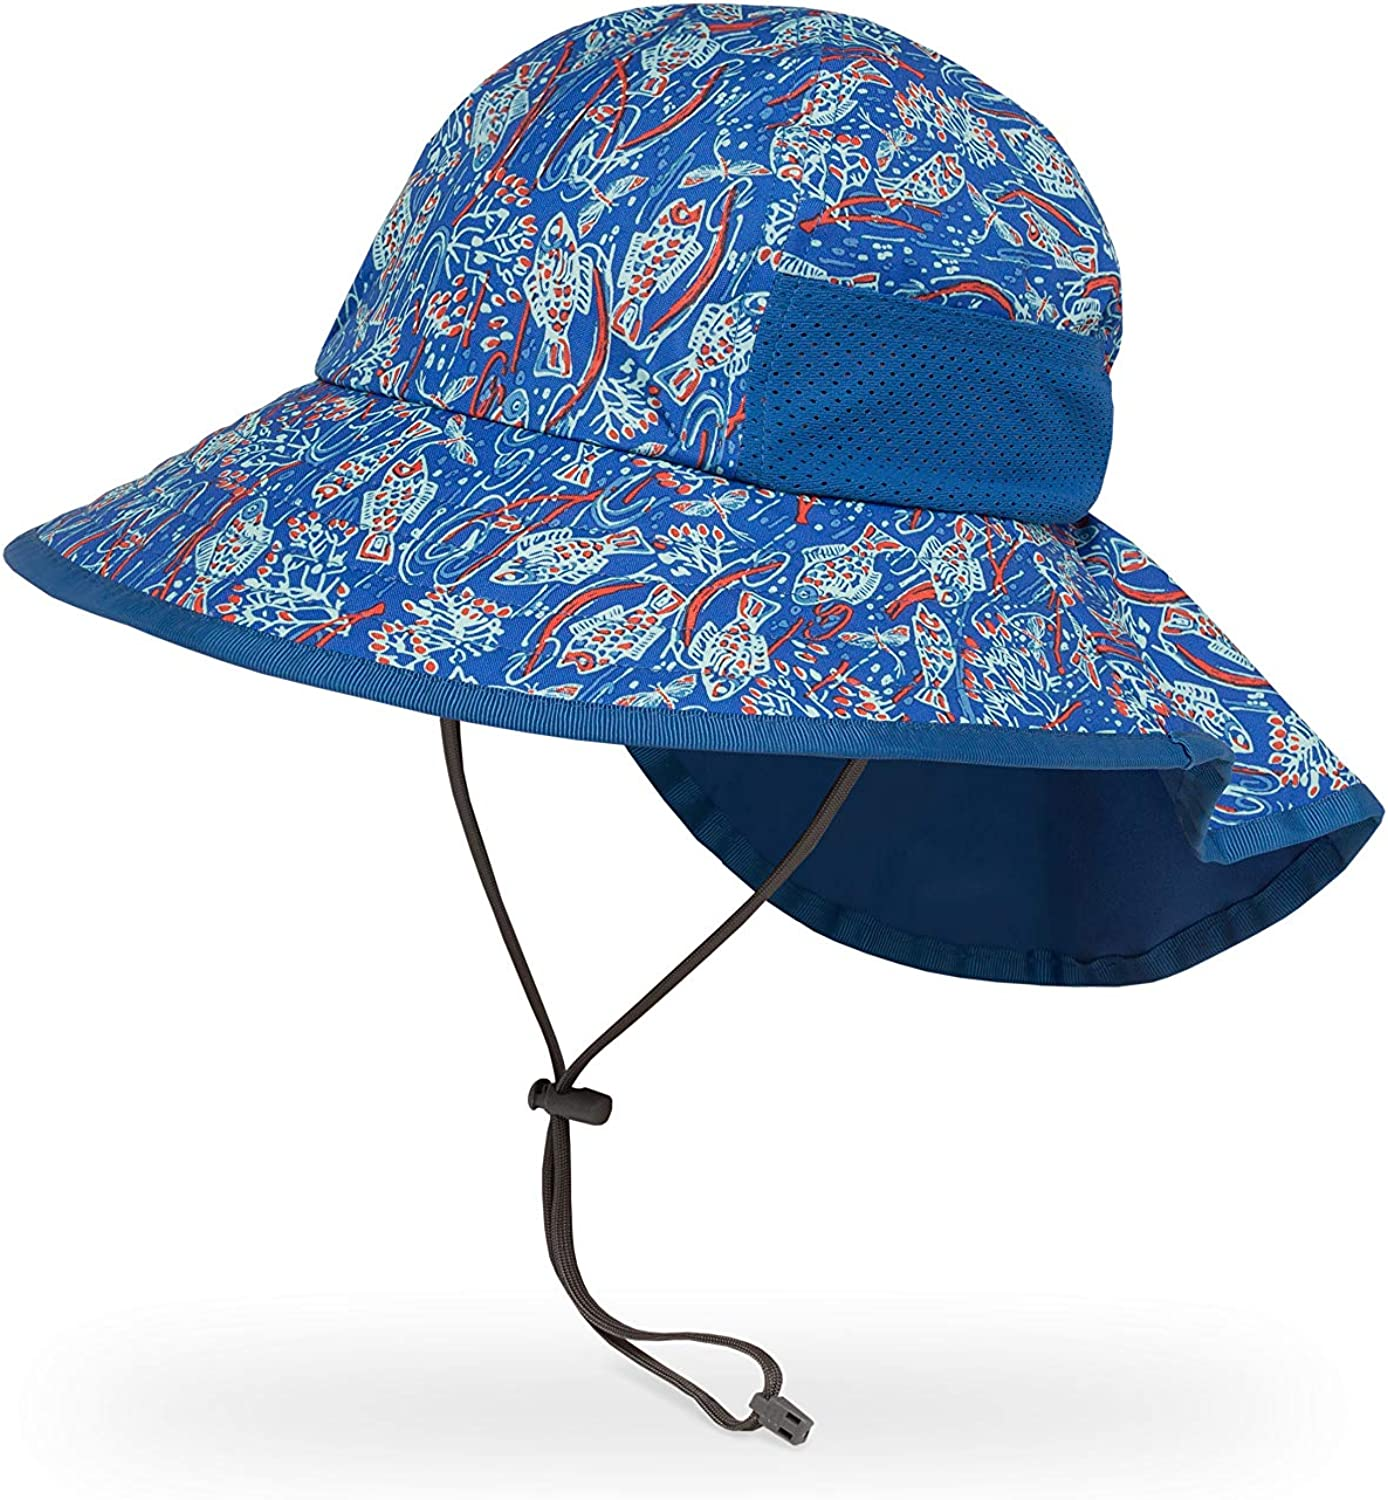 Sunday Afternoons Kids Play Wild River Hat, 1 EA